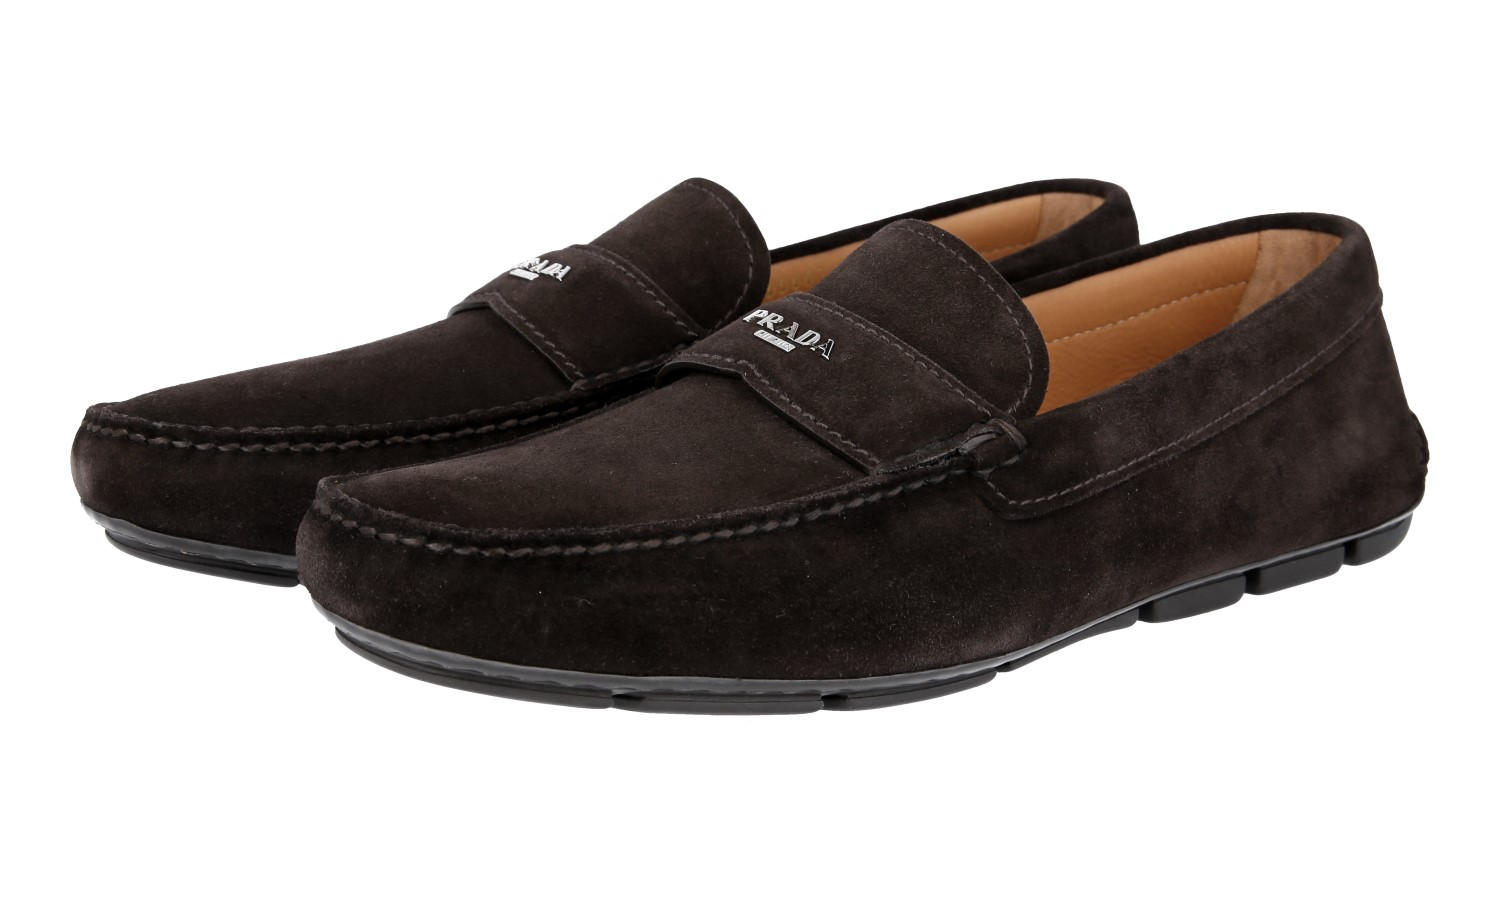 0ffa4262196 Details about AUTH LUXURY PRADA LOGO LOAFER SHOES 2DD007 BROWN SUEDE US 11  EU 44 44